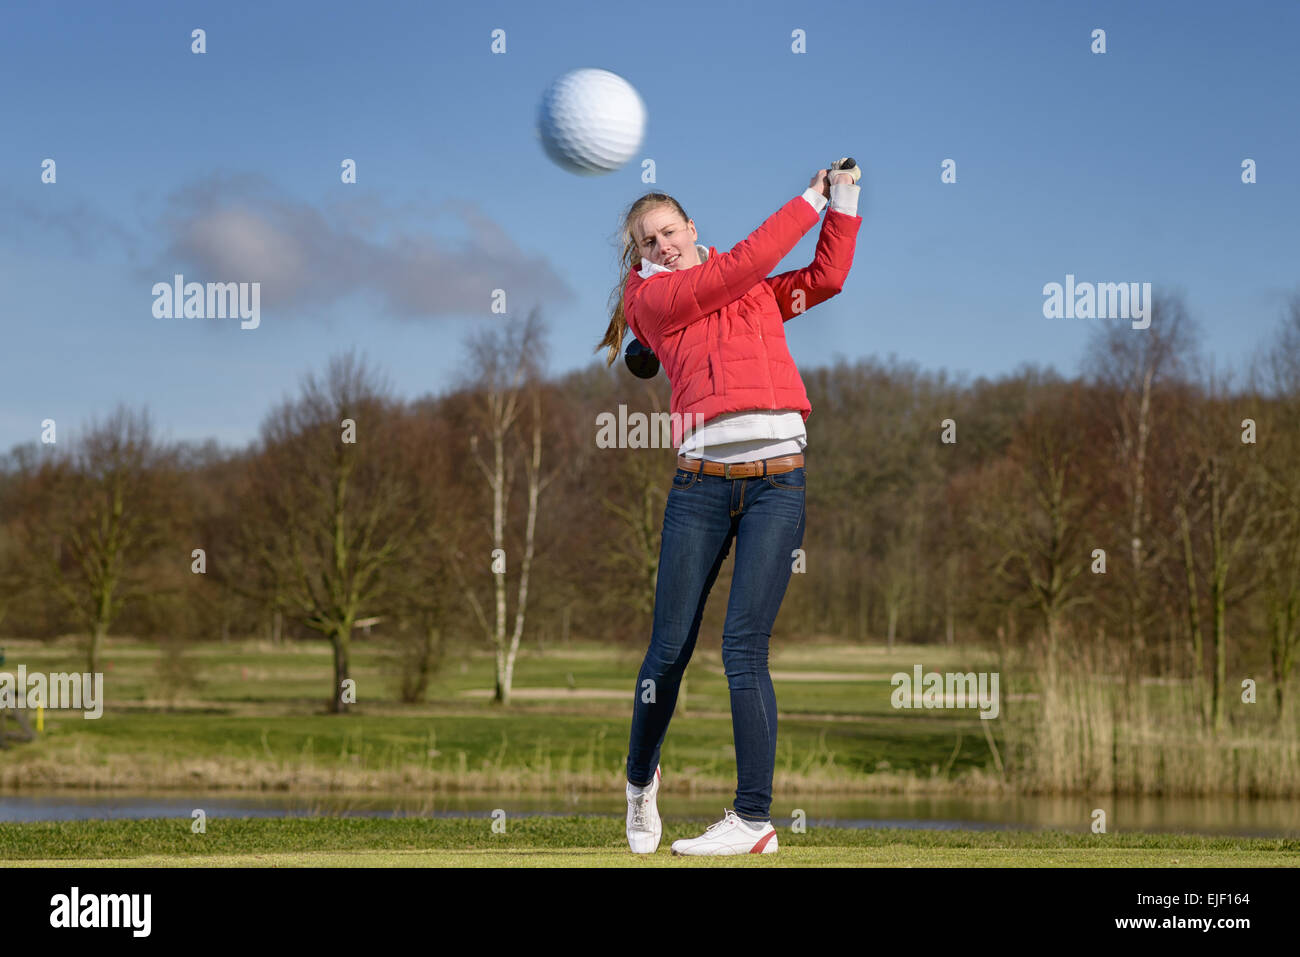 Woman golfer hitting the golf ball with a driver in front of a water hazard on a golf course with the ball flying - Stock Image